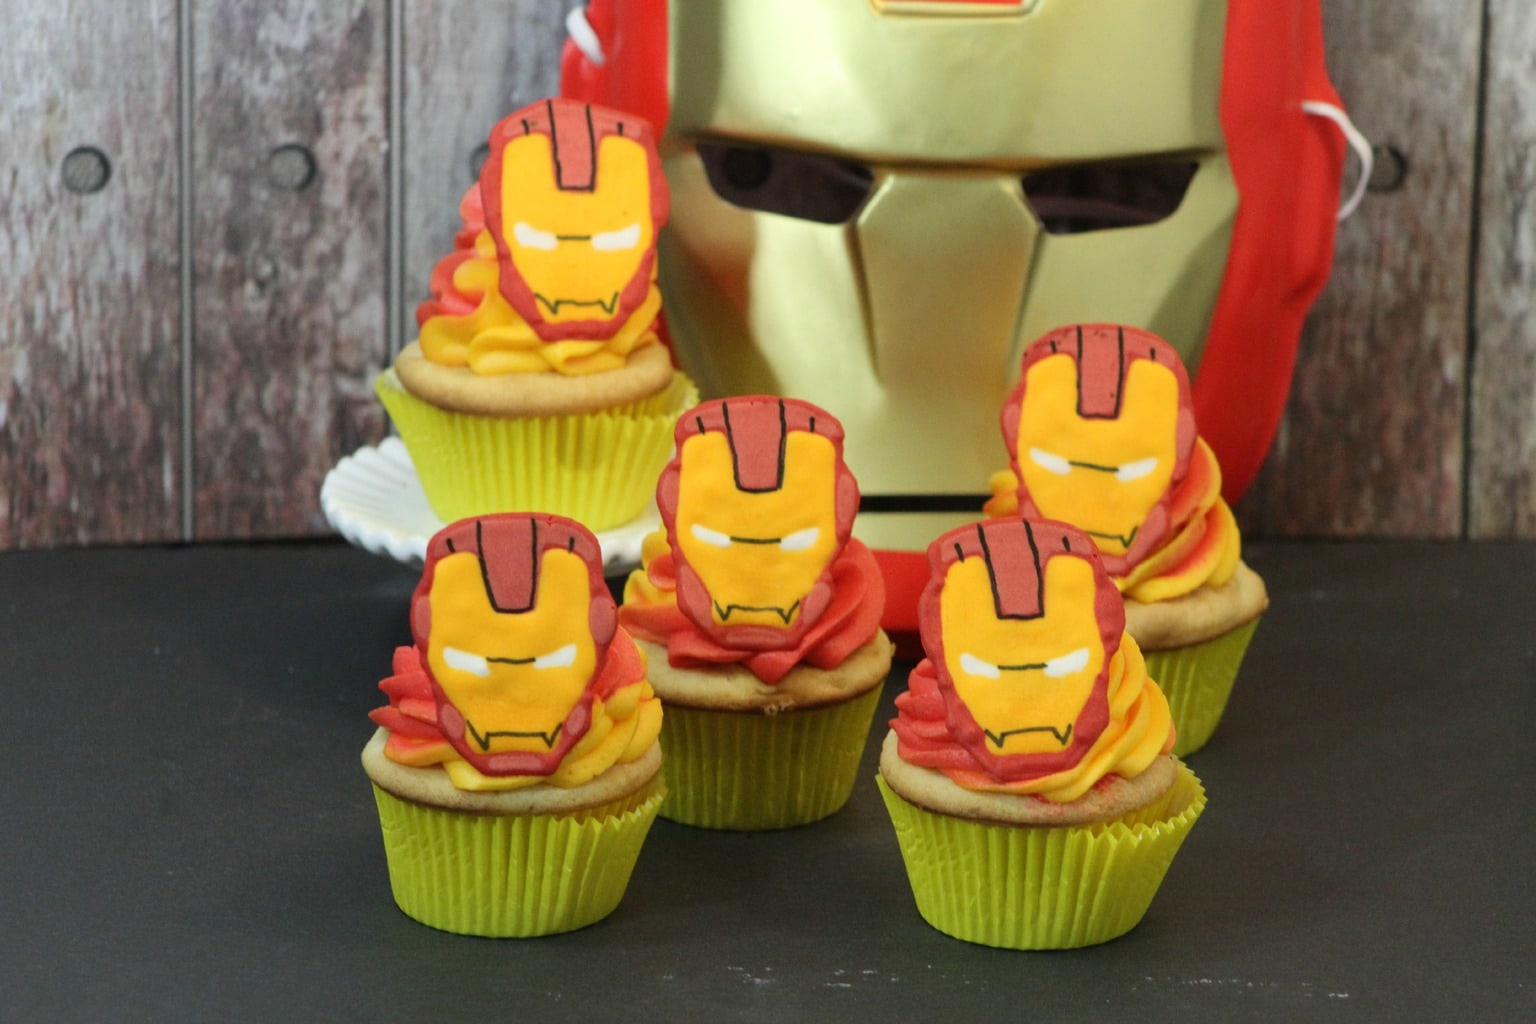 Who's ready for Iron Man Cupcakes? Have you decided who you're going to support in Captain America: Civil War? I know which team I'm on!